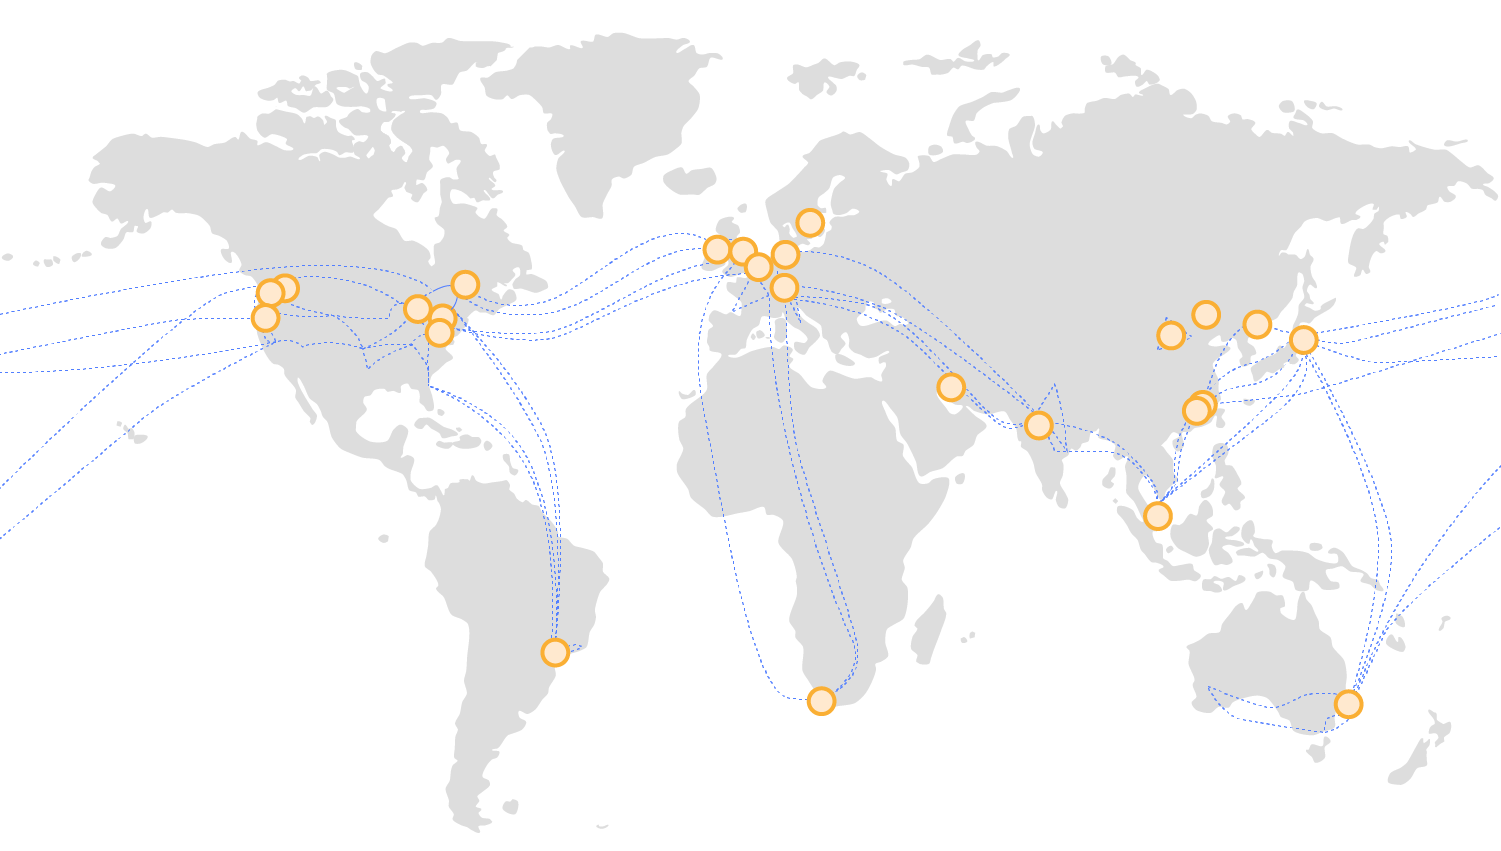 Global Infrastructure Map